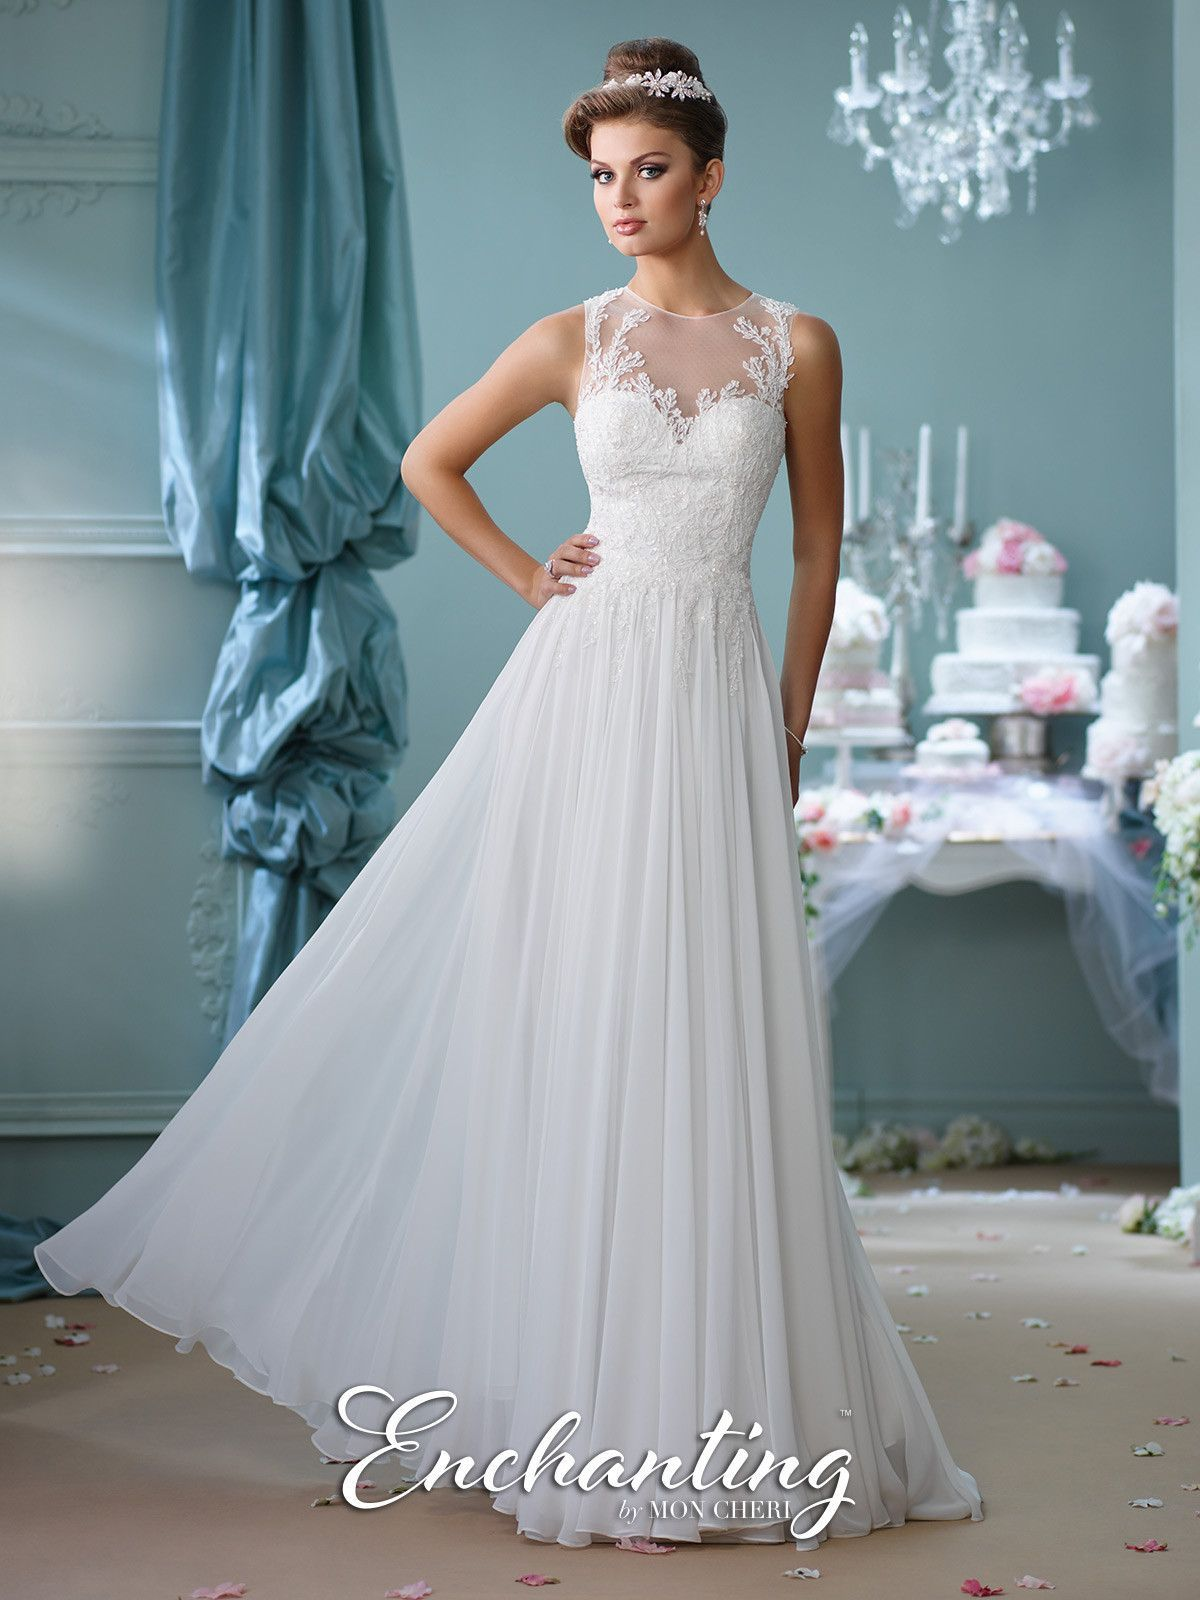 Blog | Enchanted, Bridal gowns and Gowns